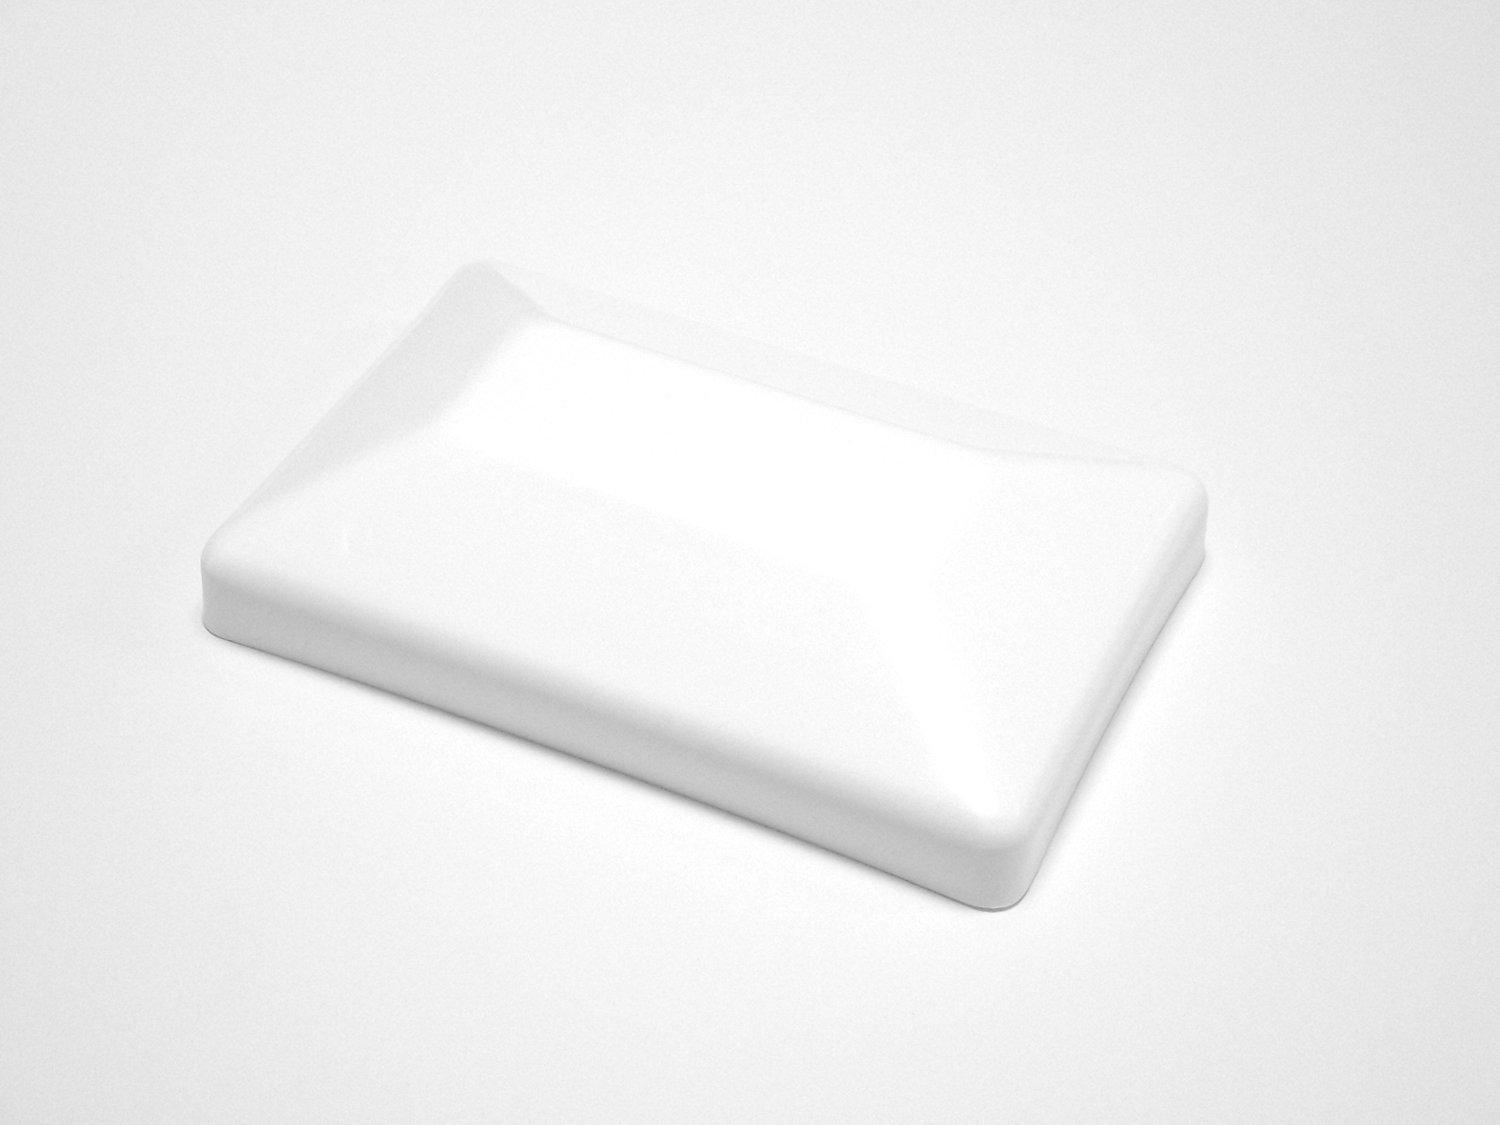 08 PACK-White Fence Post Plastic Caps 4x6 (3 5/8'' X 5 5/8'') Decorative Fence toppers for 4 x 6 post